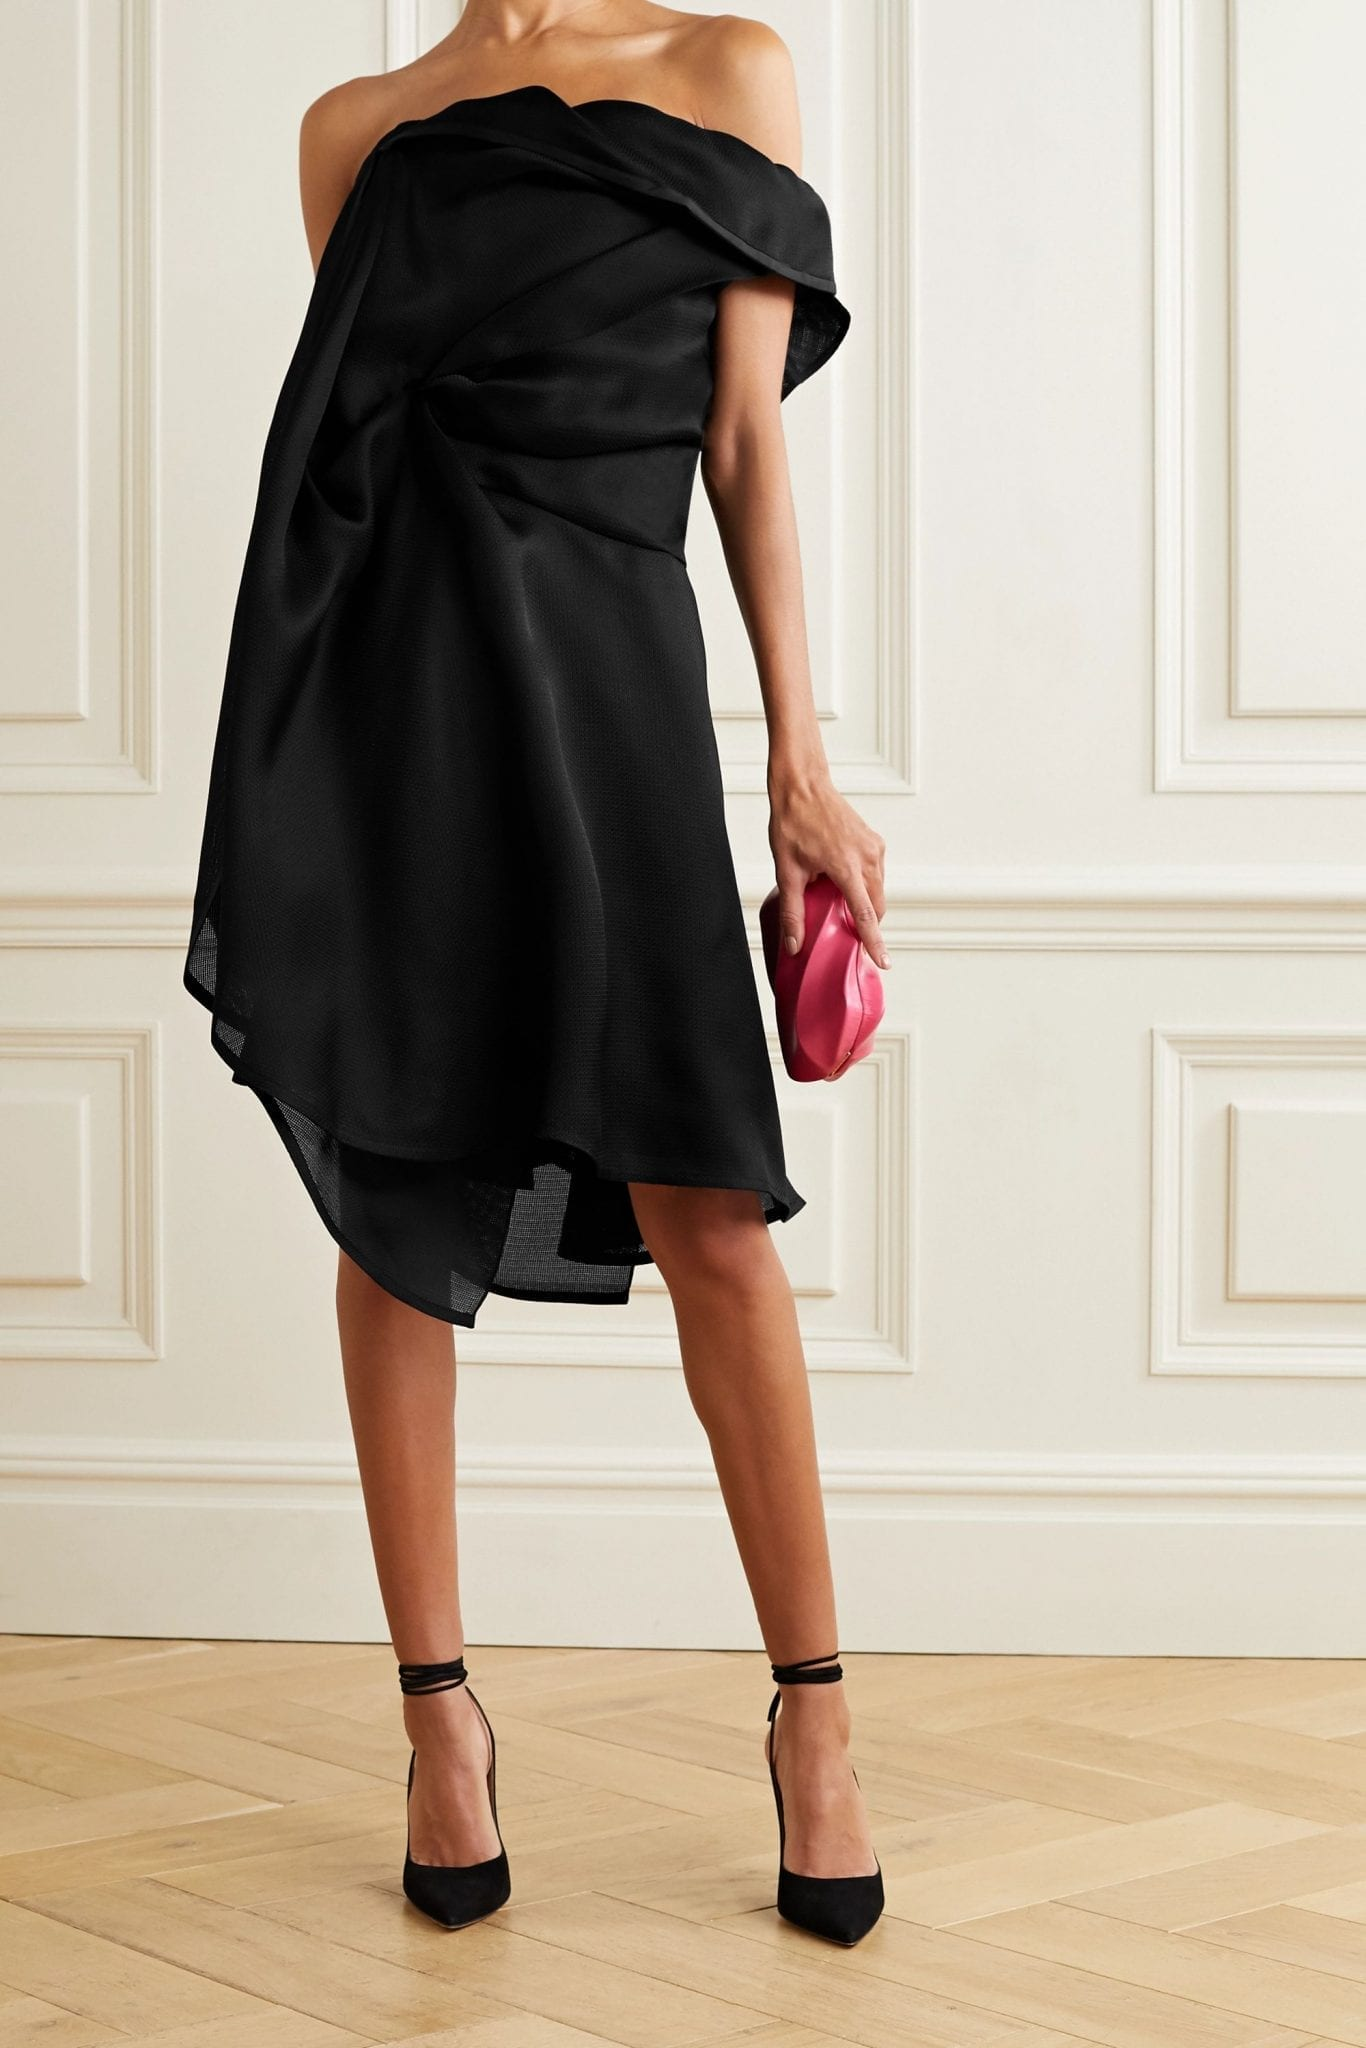 NINA RICCI Asymmetric Gathered Silk-gazar Dress